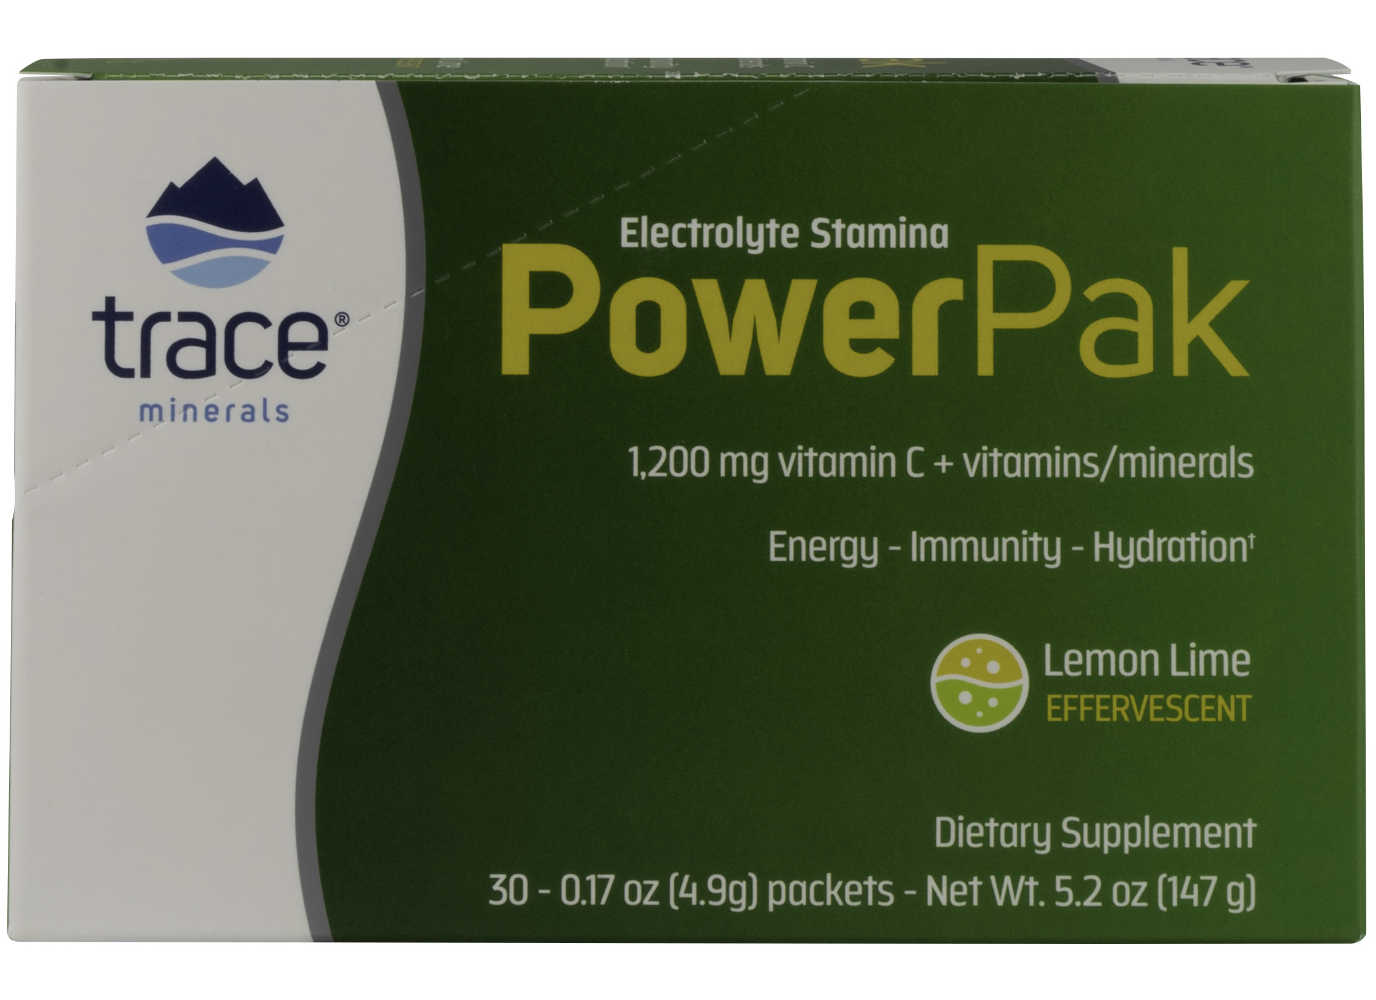 Trace Minerals Research: Electrolyte Stamina Power Pak Lemon Lime 30 packet